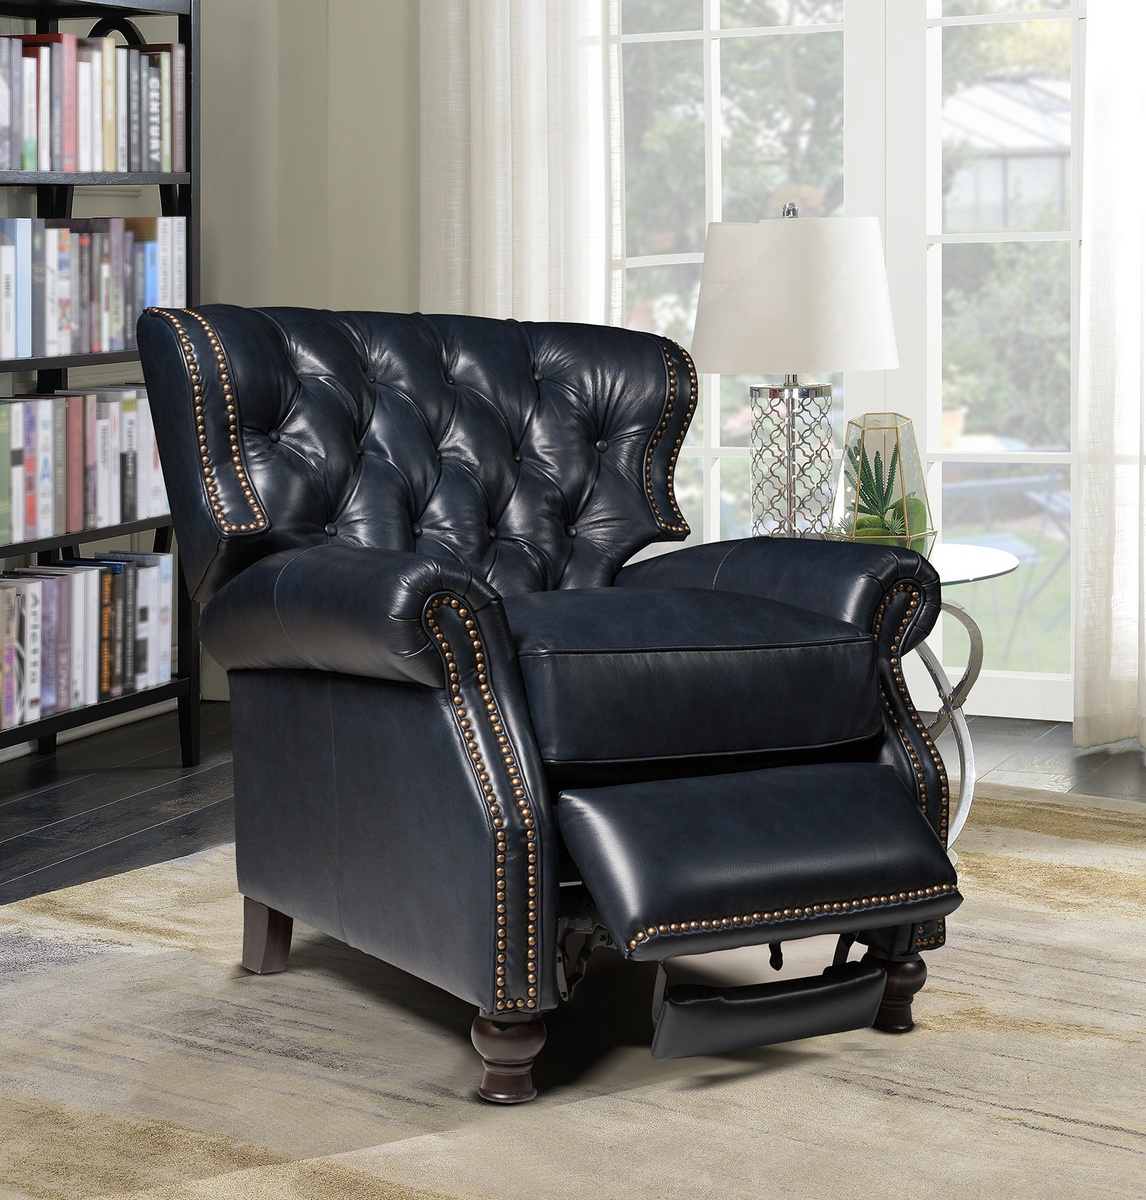 Barcalounger Presidential Recliner Shoreham Blue All Leather